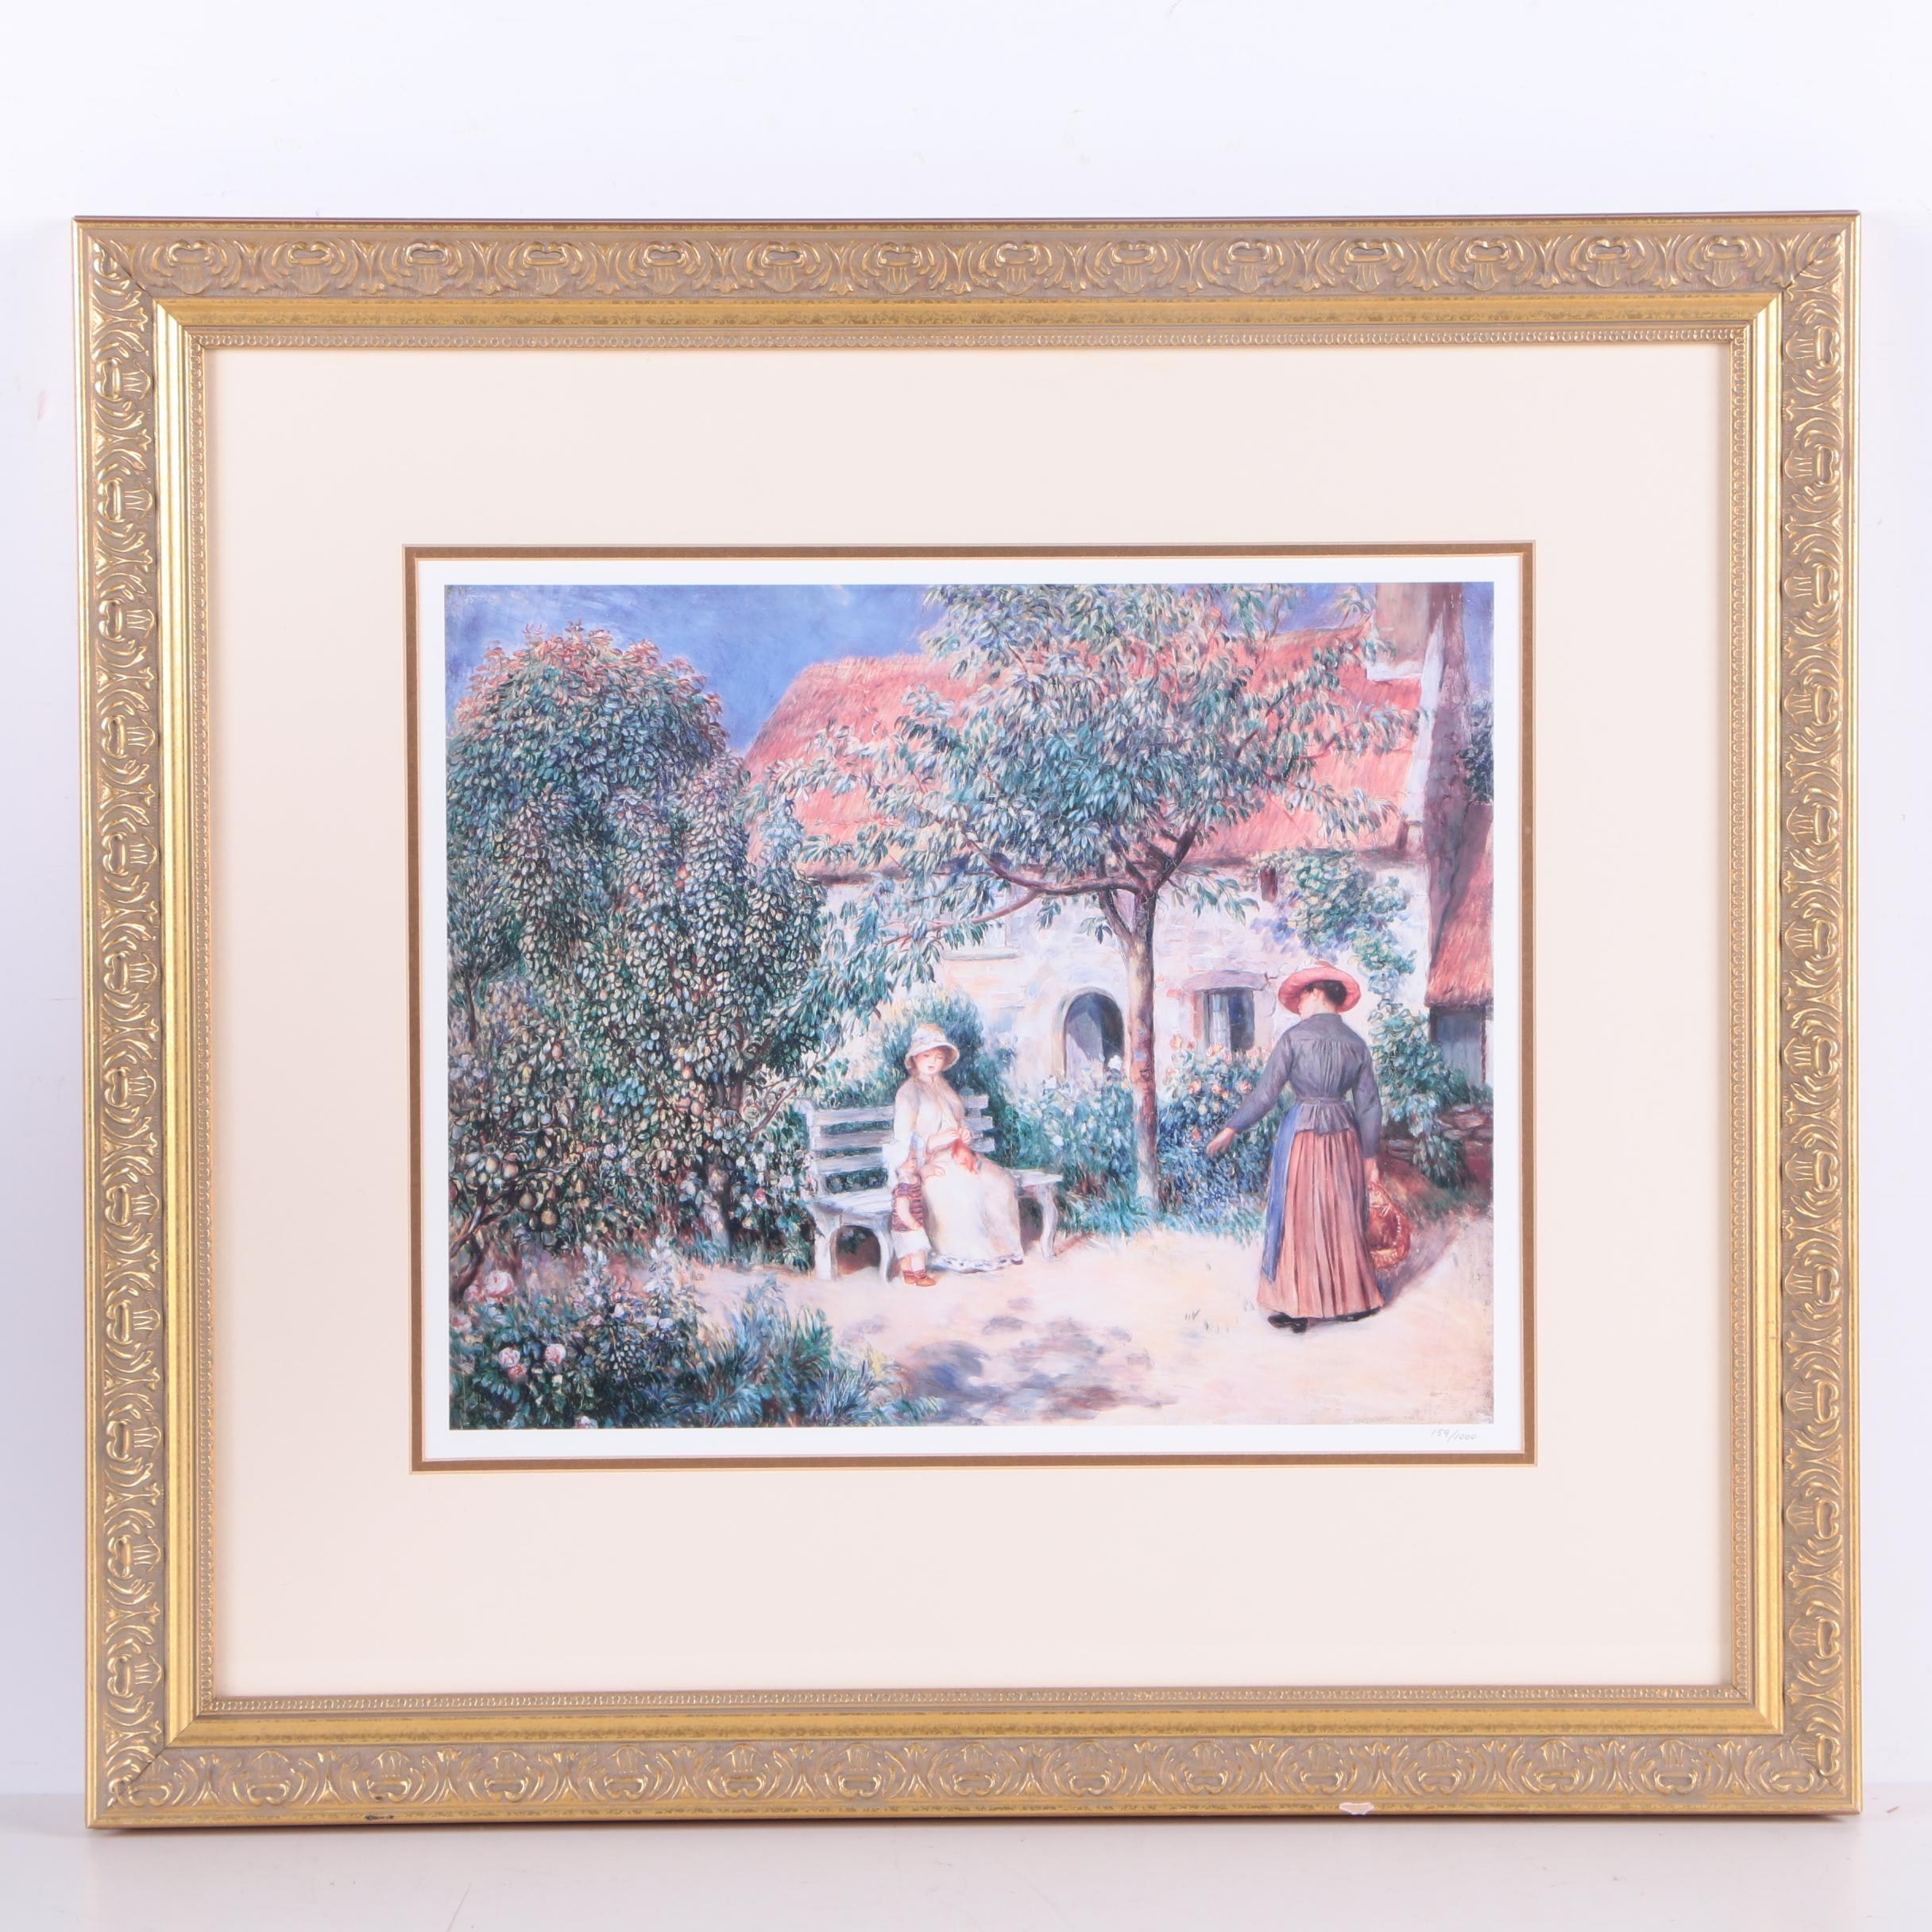 """Limited Edition Offset Lithograph After Renoir's """"Garden Scene in Brittany"""""""